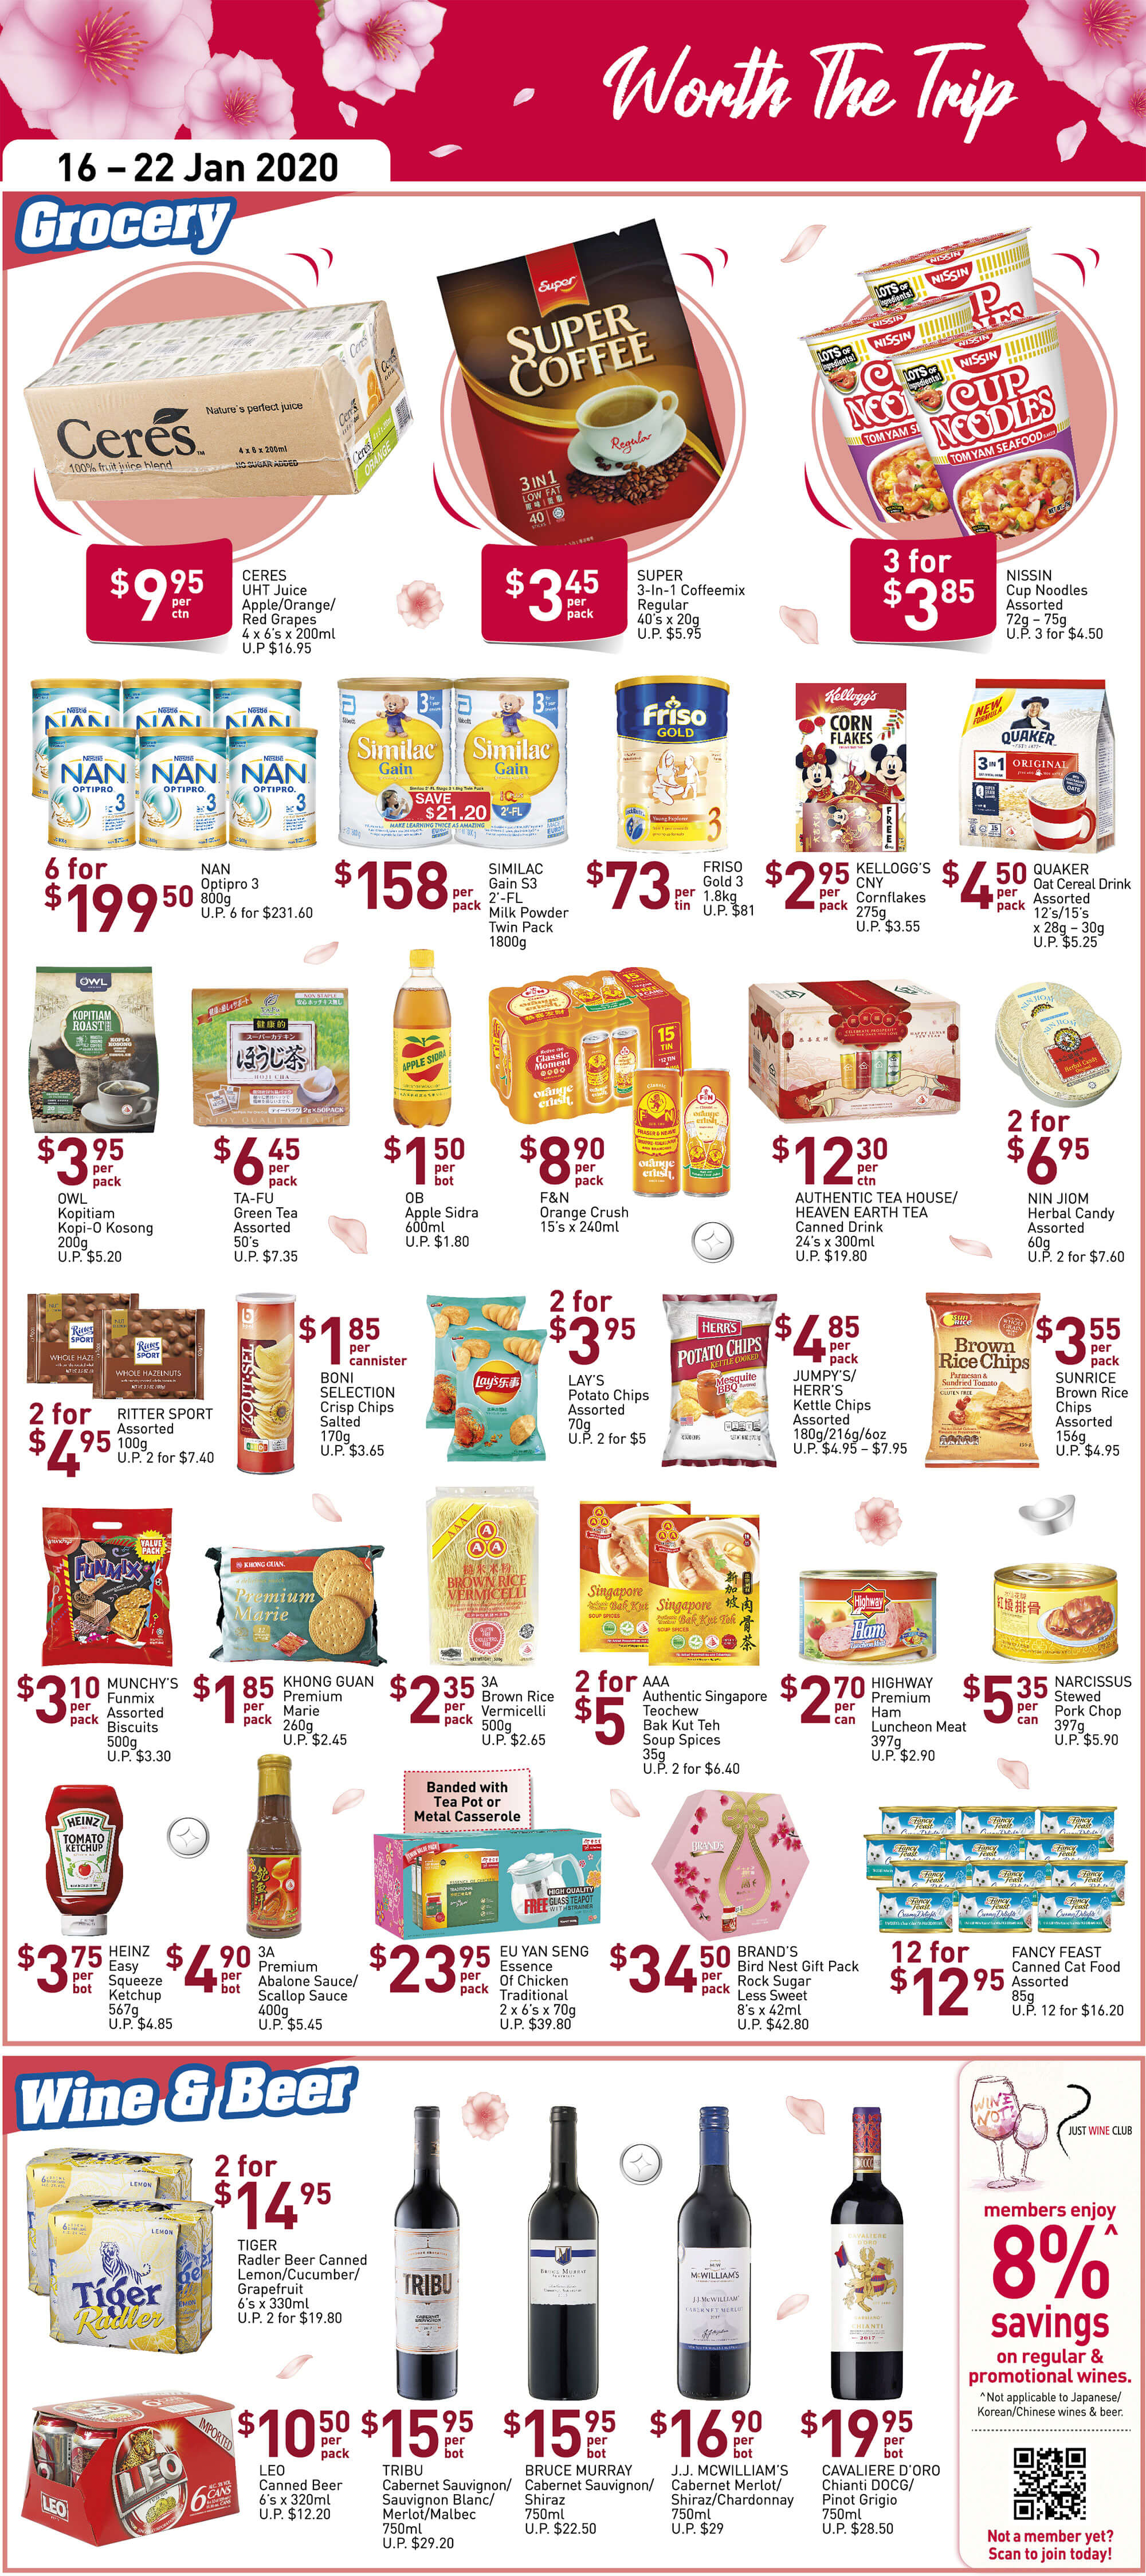 NTUC FairPrice SG Your Weekly Saver Promotion 16-22 Jan 2020 | Why Not Deals 6 & Promotions